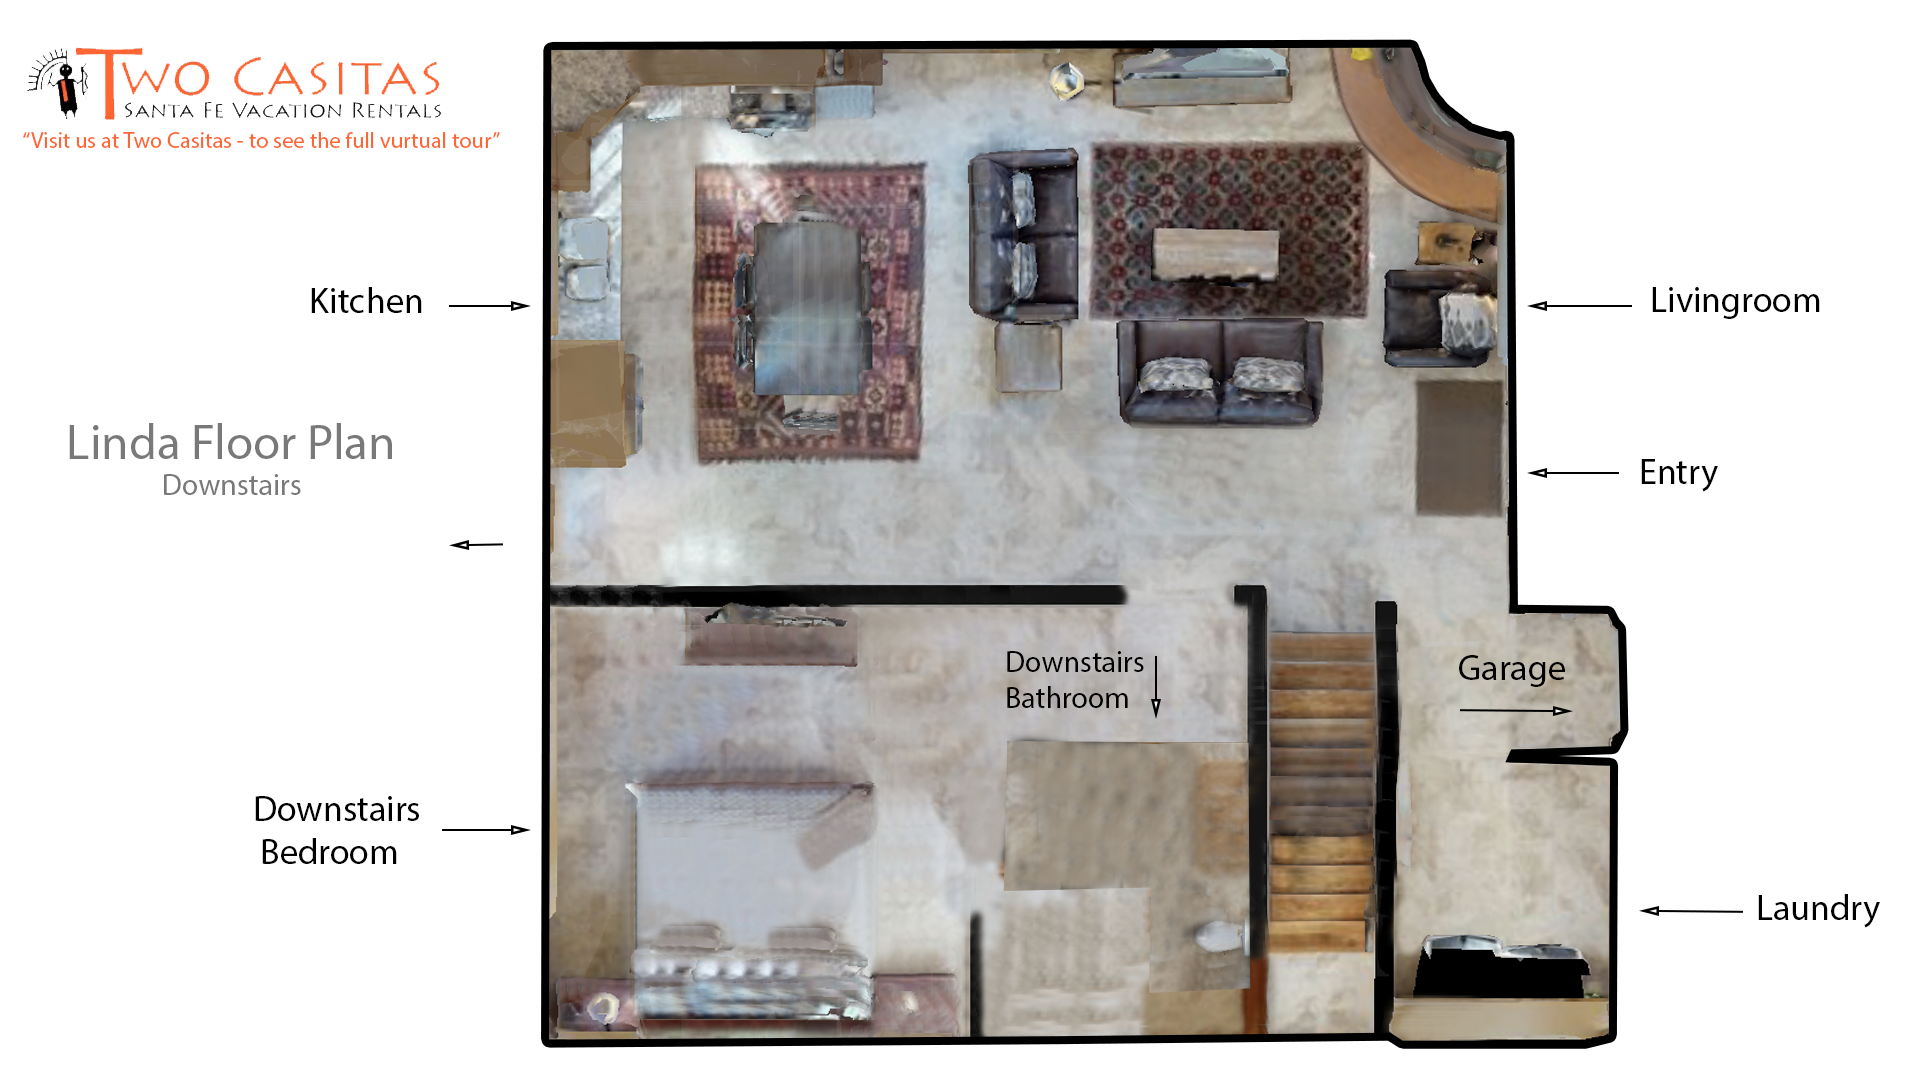 Floor Plan for Linda